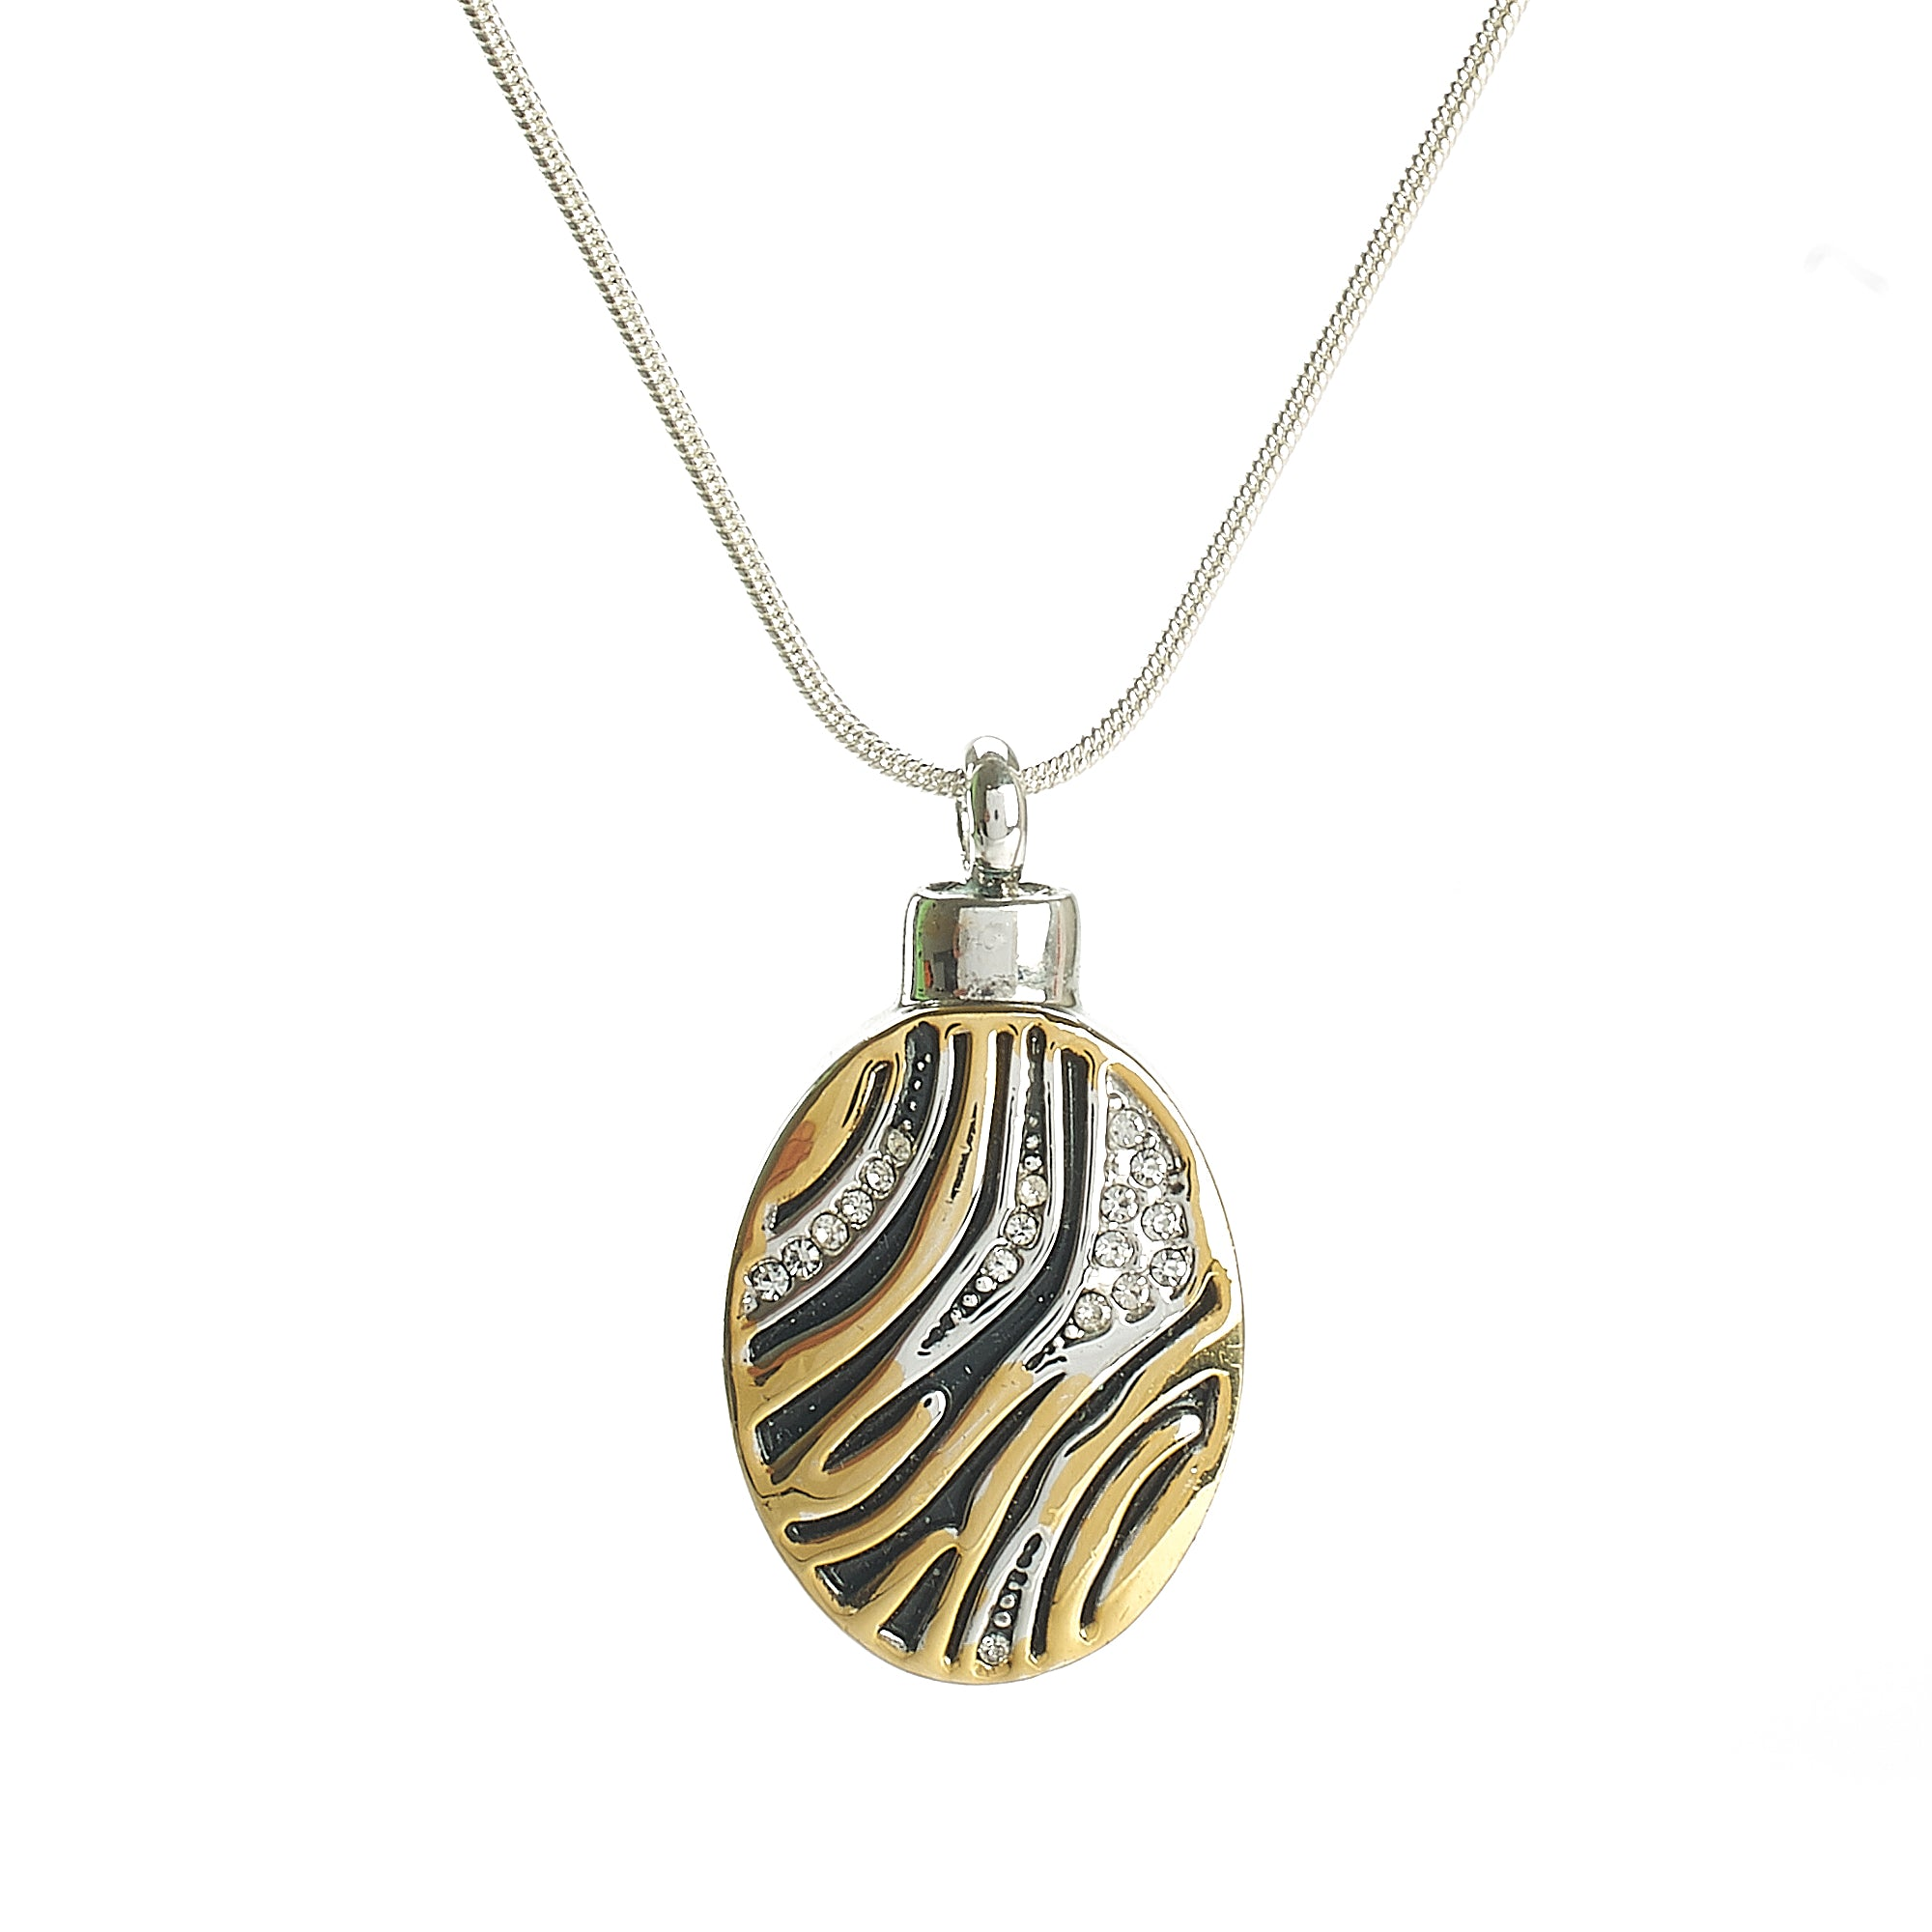 Cremation Pendant - Gold, Silver, Black Animal Print Oval